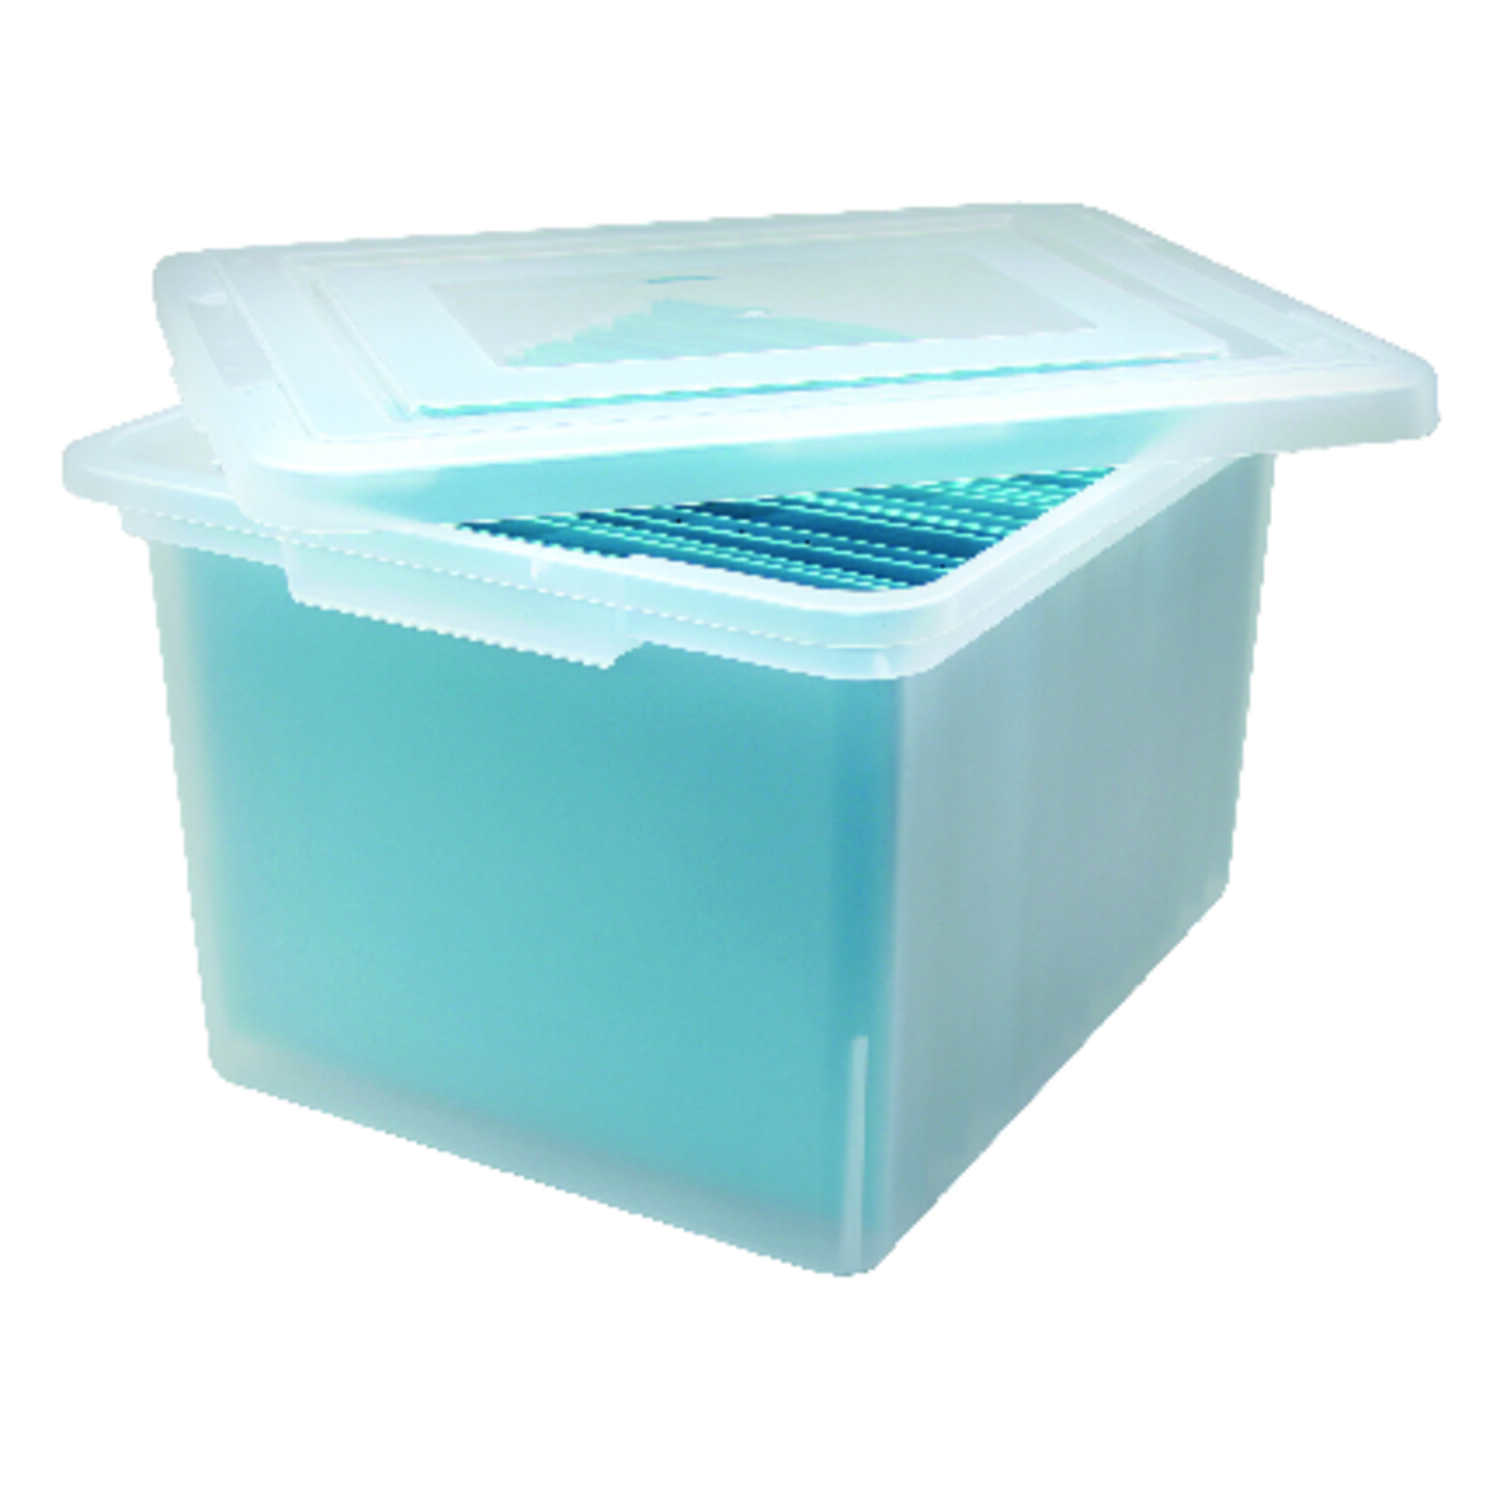 Iris  10.8 in. H x 18 in. W x 14.3 in. D Stackable Storage Box